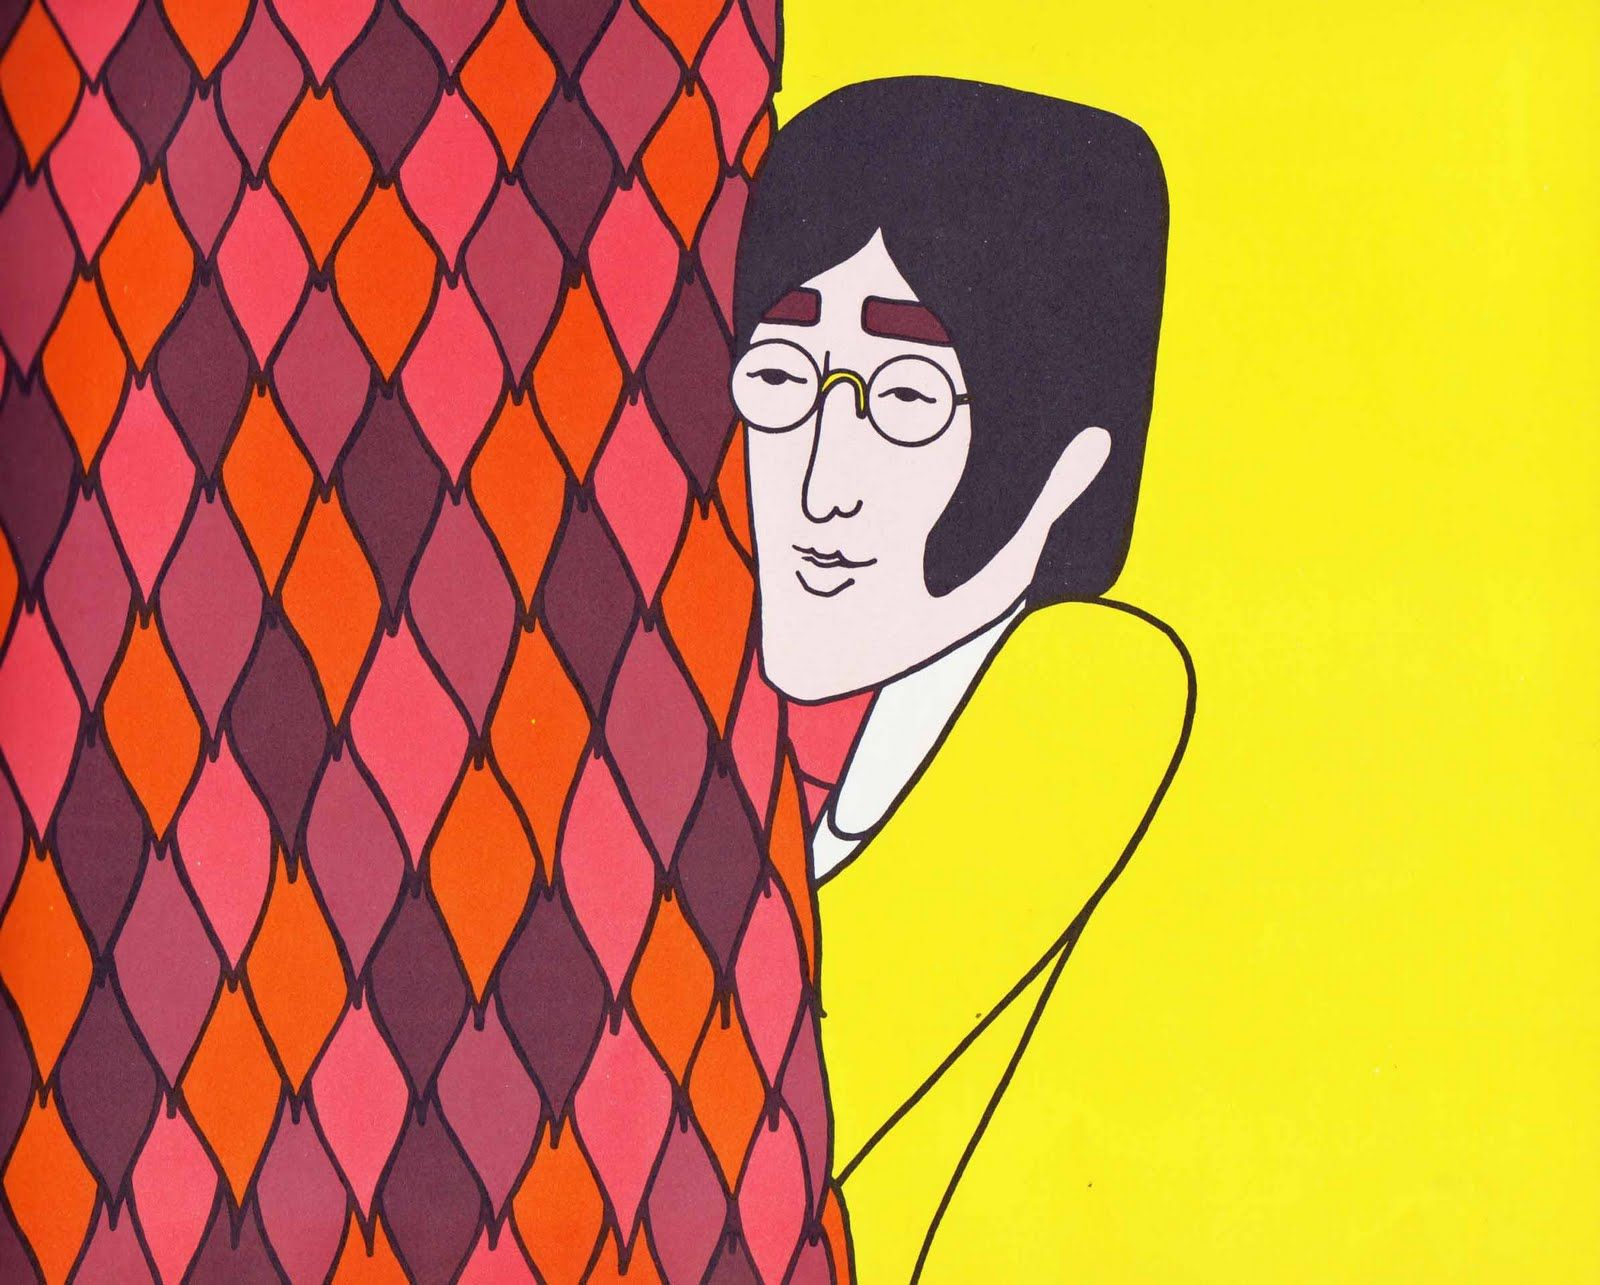 We Love You, Beatles: Vintage Children's Illustration Circa 1971 | Brain Pickings